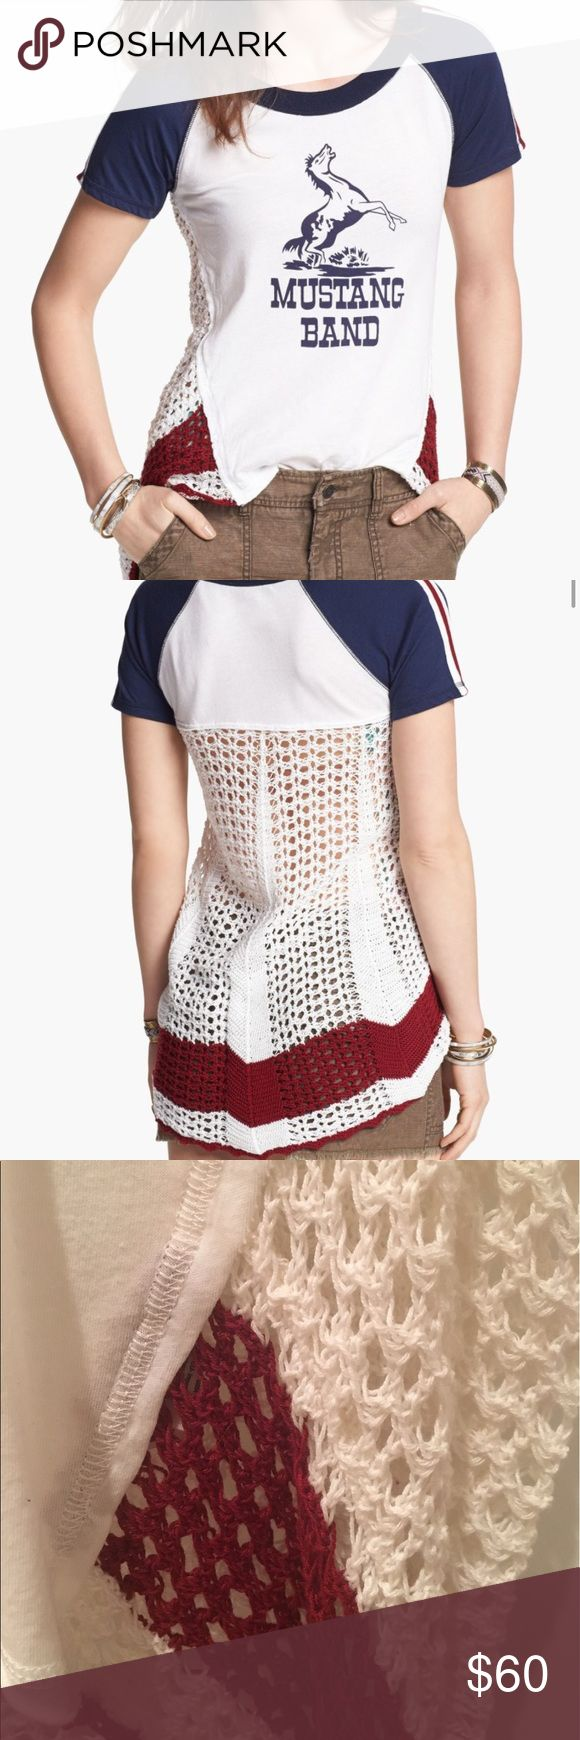 "Free People Mustang Band Crochet Tee Free People ""Mustang Band"" graphic white Tee with navy sleeves. Embellished with red/white stripe detailing in shoulders and crochet sides and back. Back hangs lower than front. Size: S Free People Tops Tees - Short Sleeve"